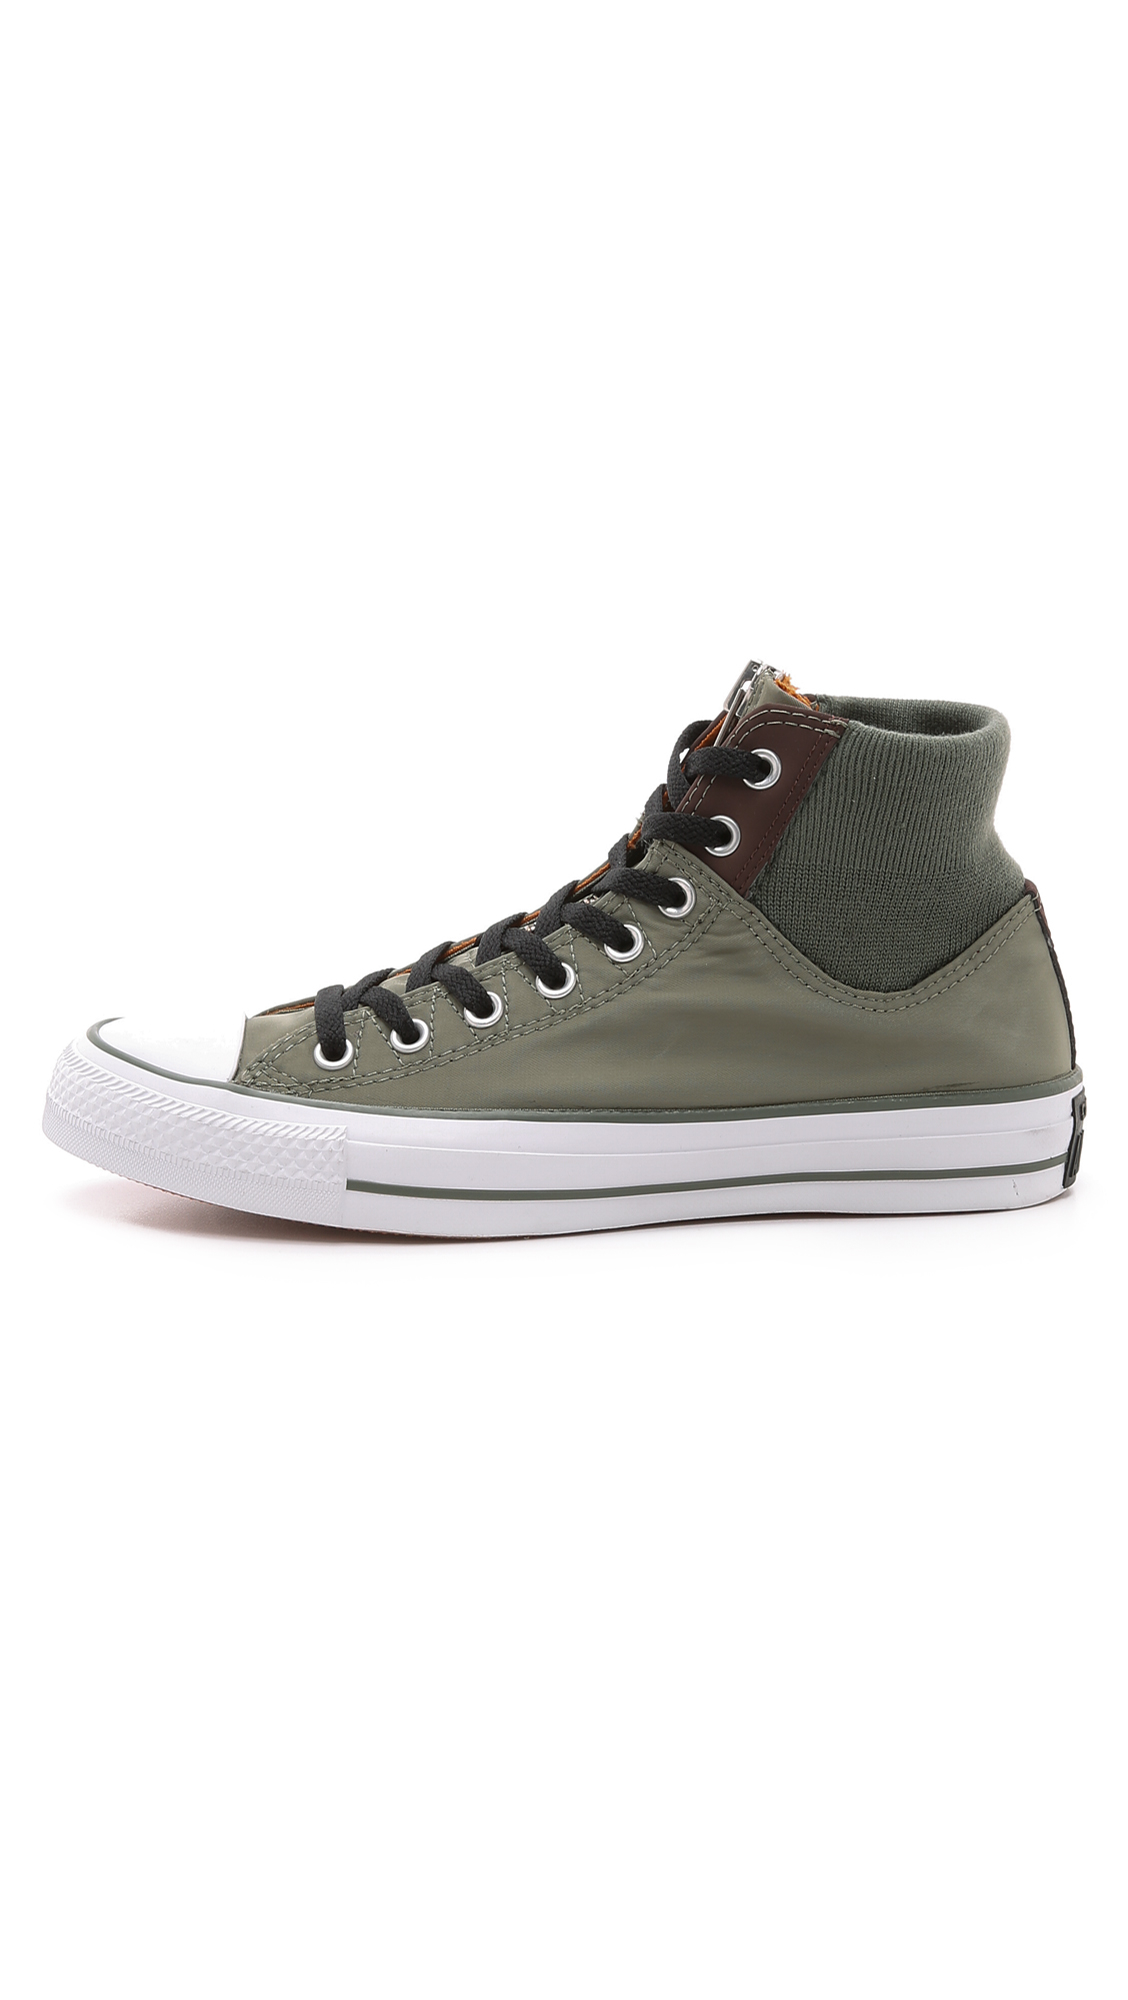 ec74d1686f31 Converse Chuck Taylor All Star Ma-1 High Top Sneakers in Green for ...